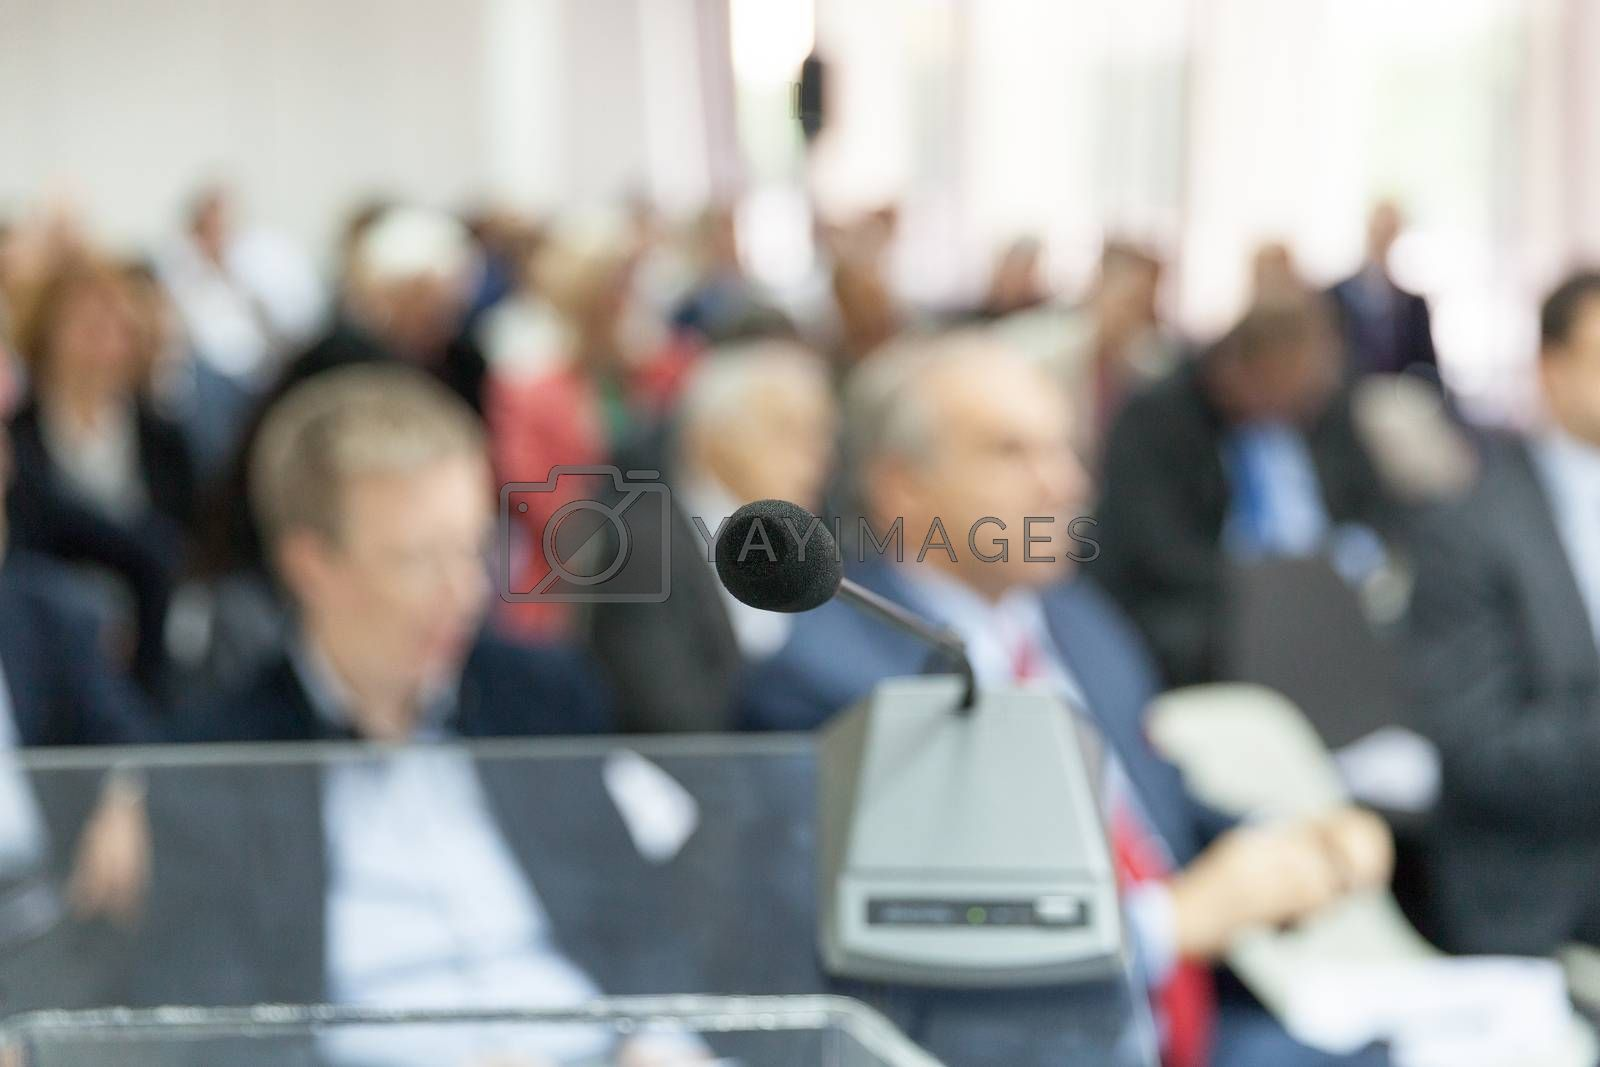 Microphone in focus against blurred audience. Participants at the professional or business conference.